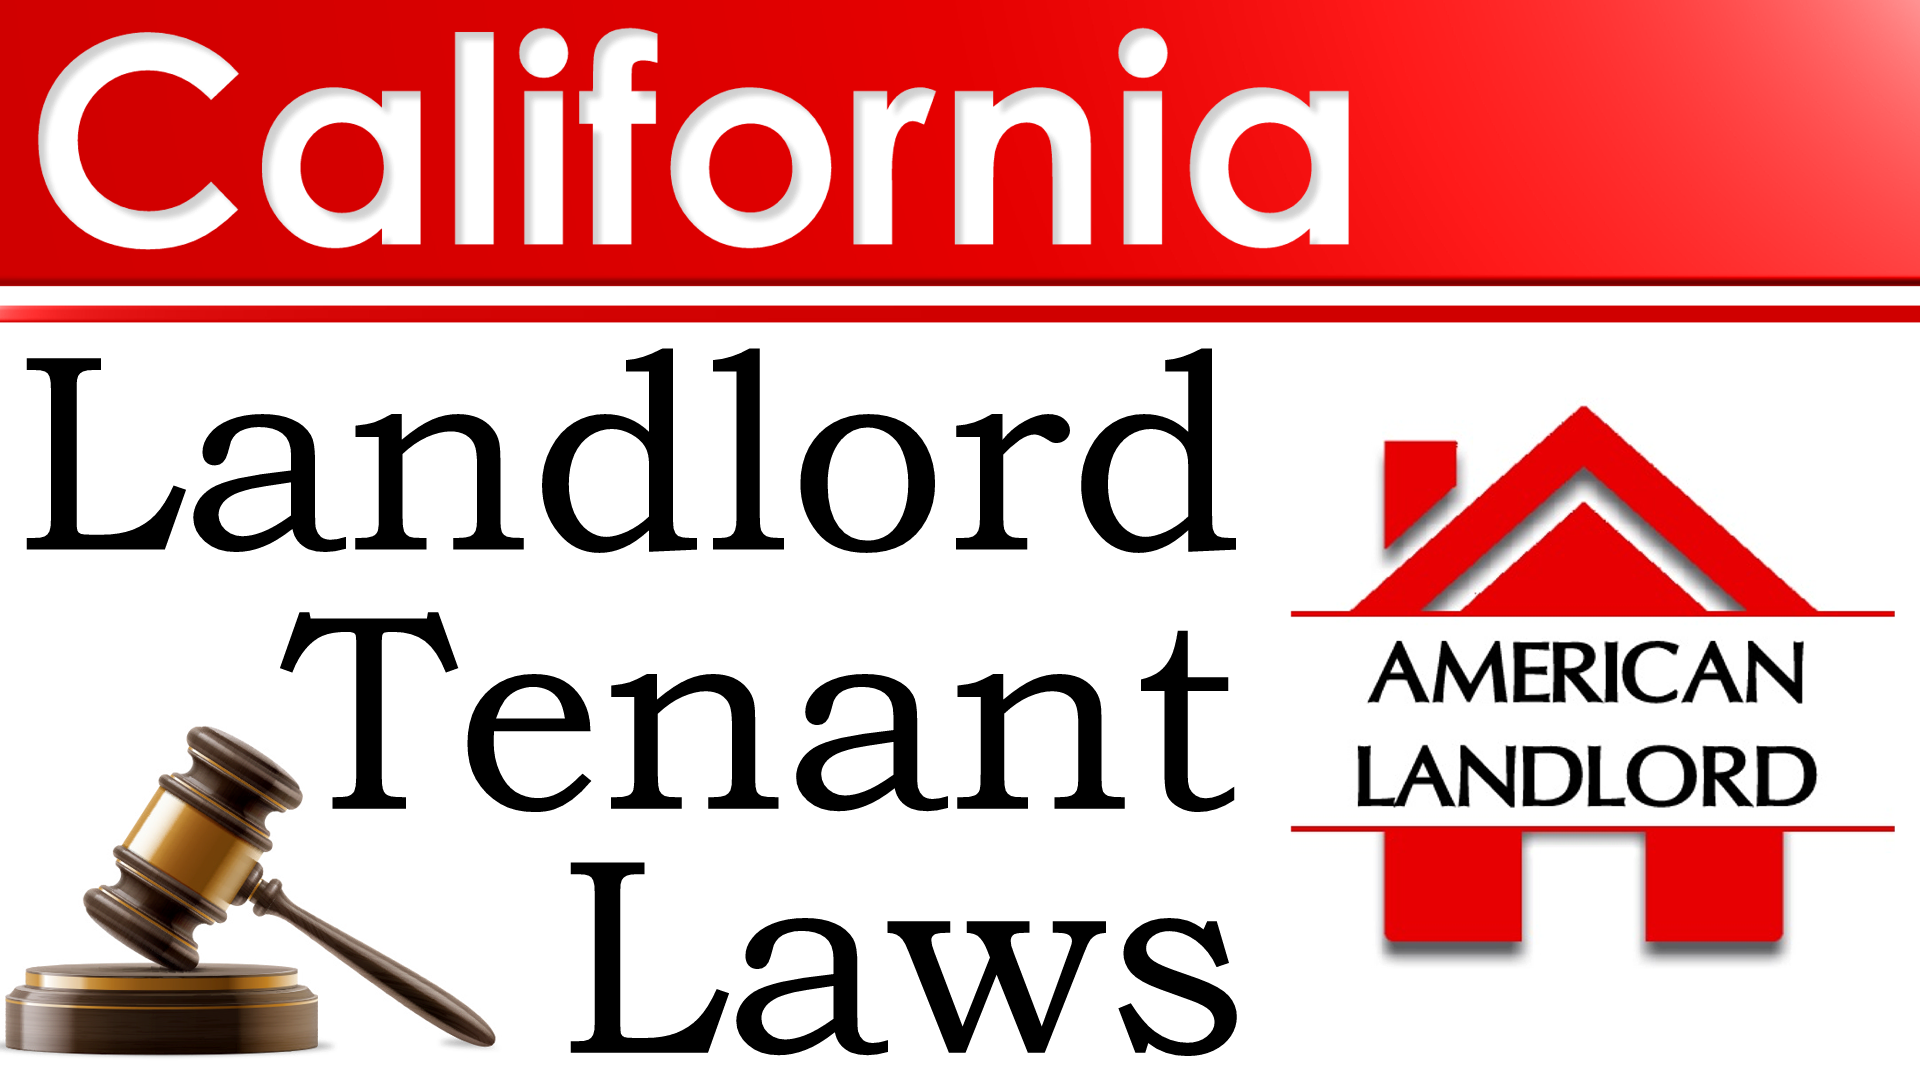 California Landlord Tenant Law